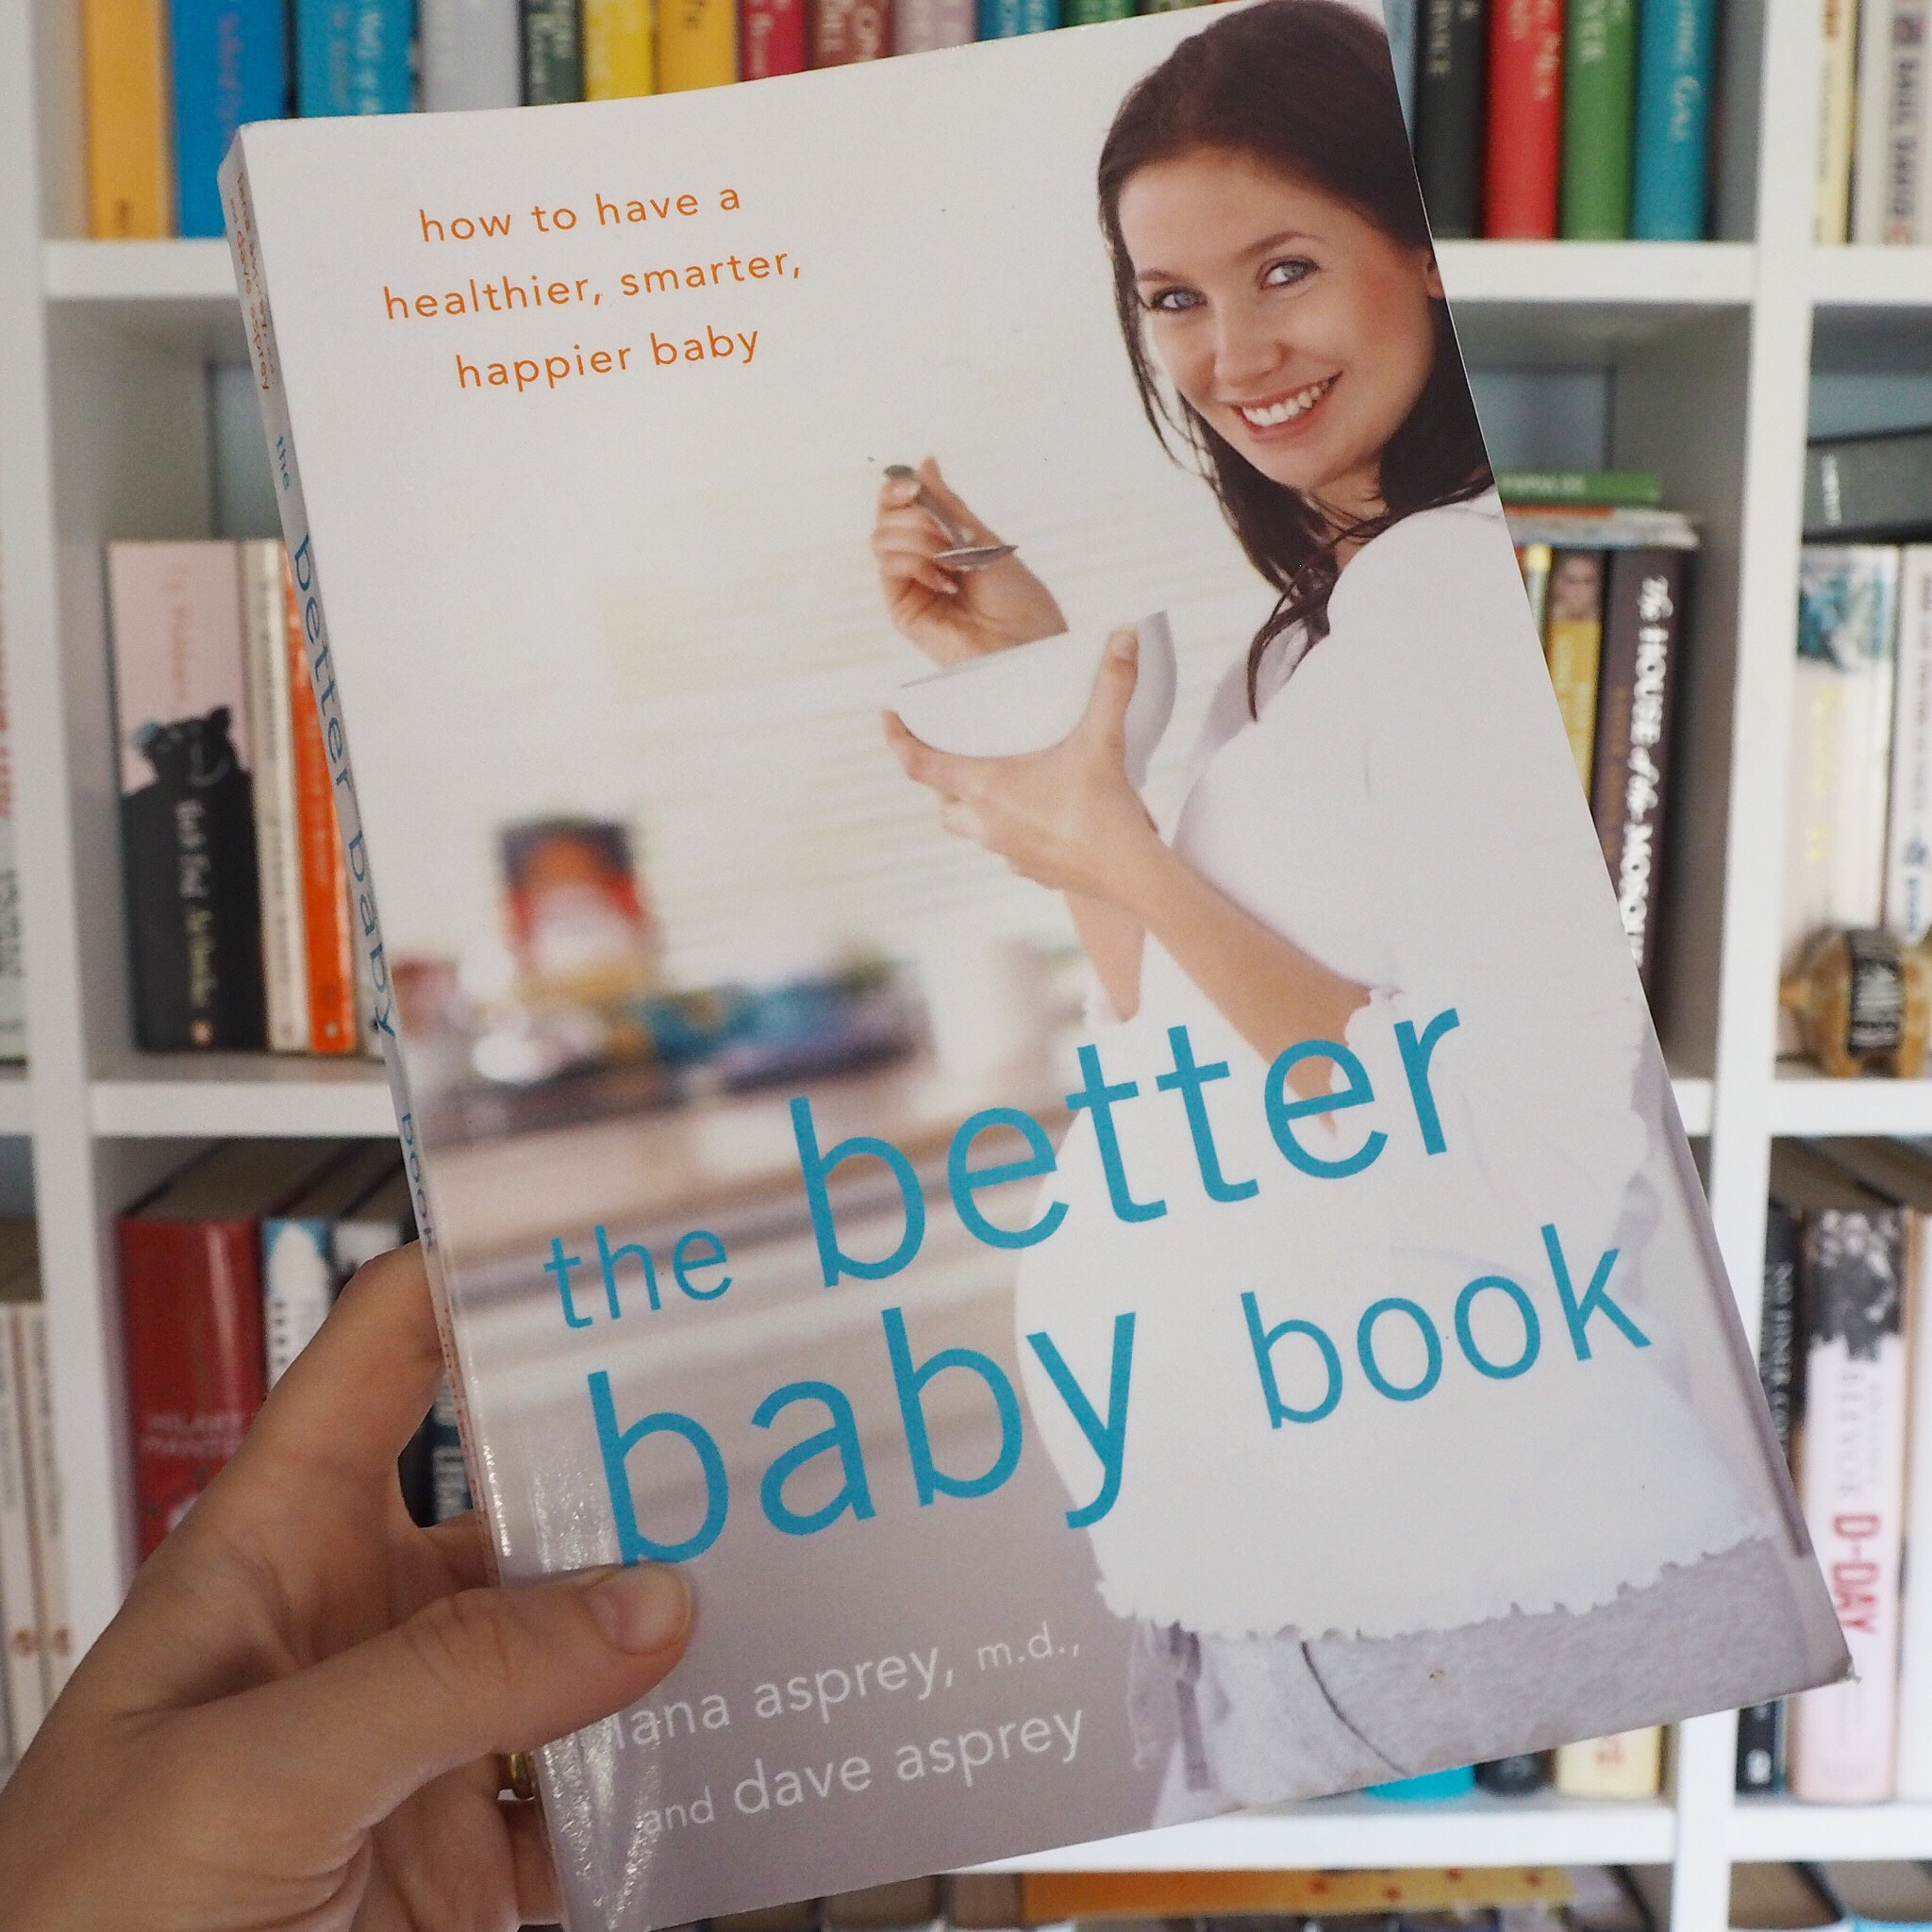 Fertility Book Review The Better Baby Book by Dave Asprey and Lana Asprey